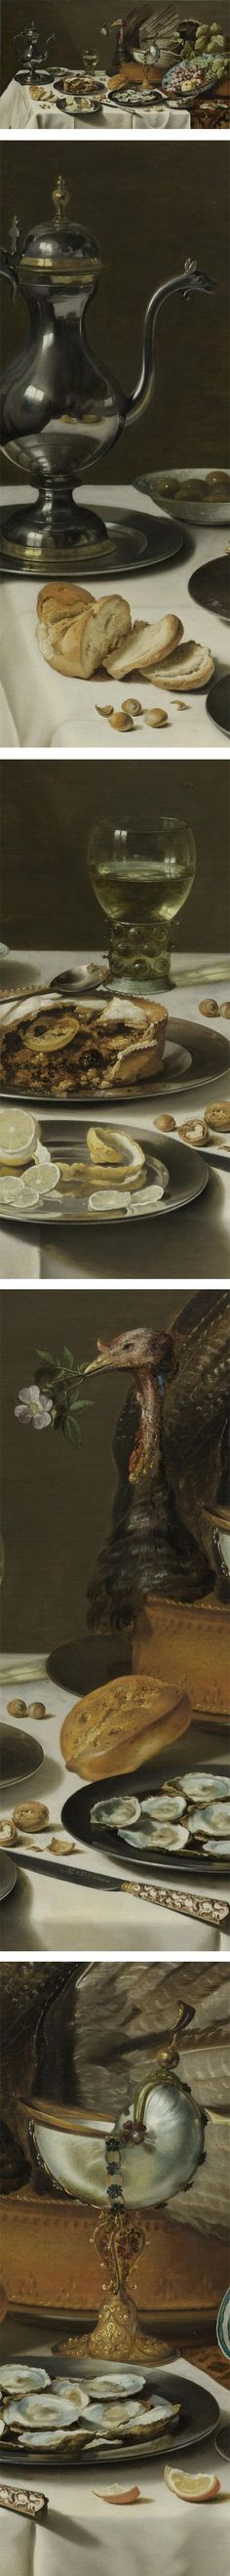 Still Life with a Turkey Pie, Pieter Claesz, 1627